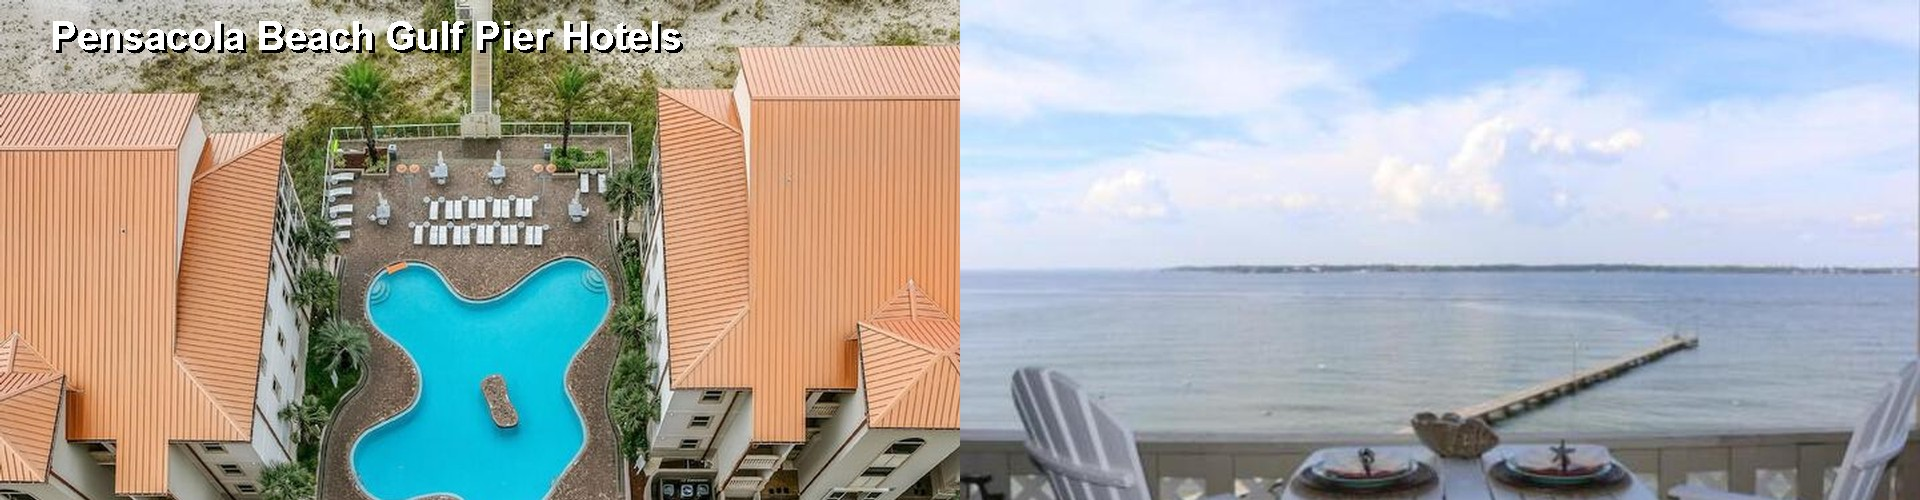 5 Best Hotels near Pensacola Beach Gulf Pier